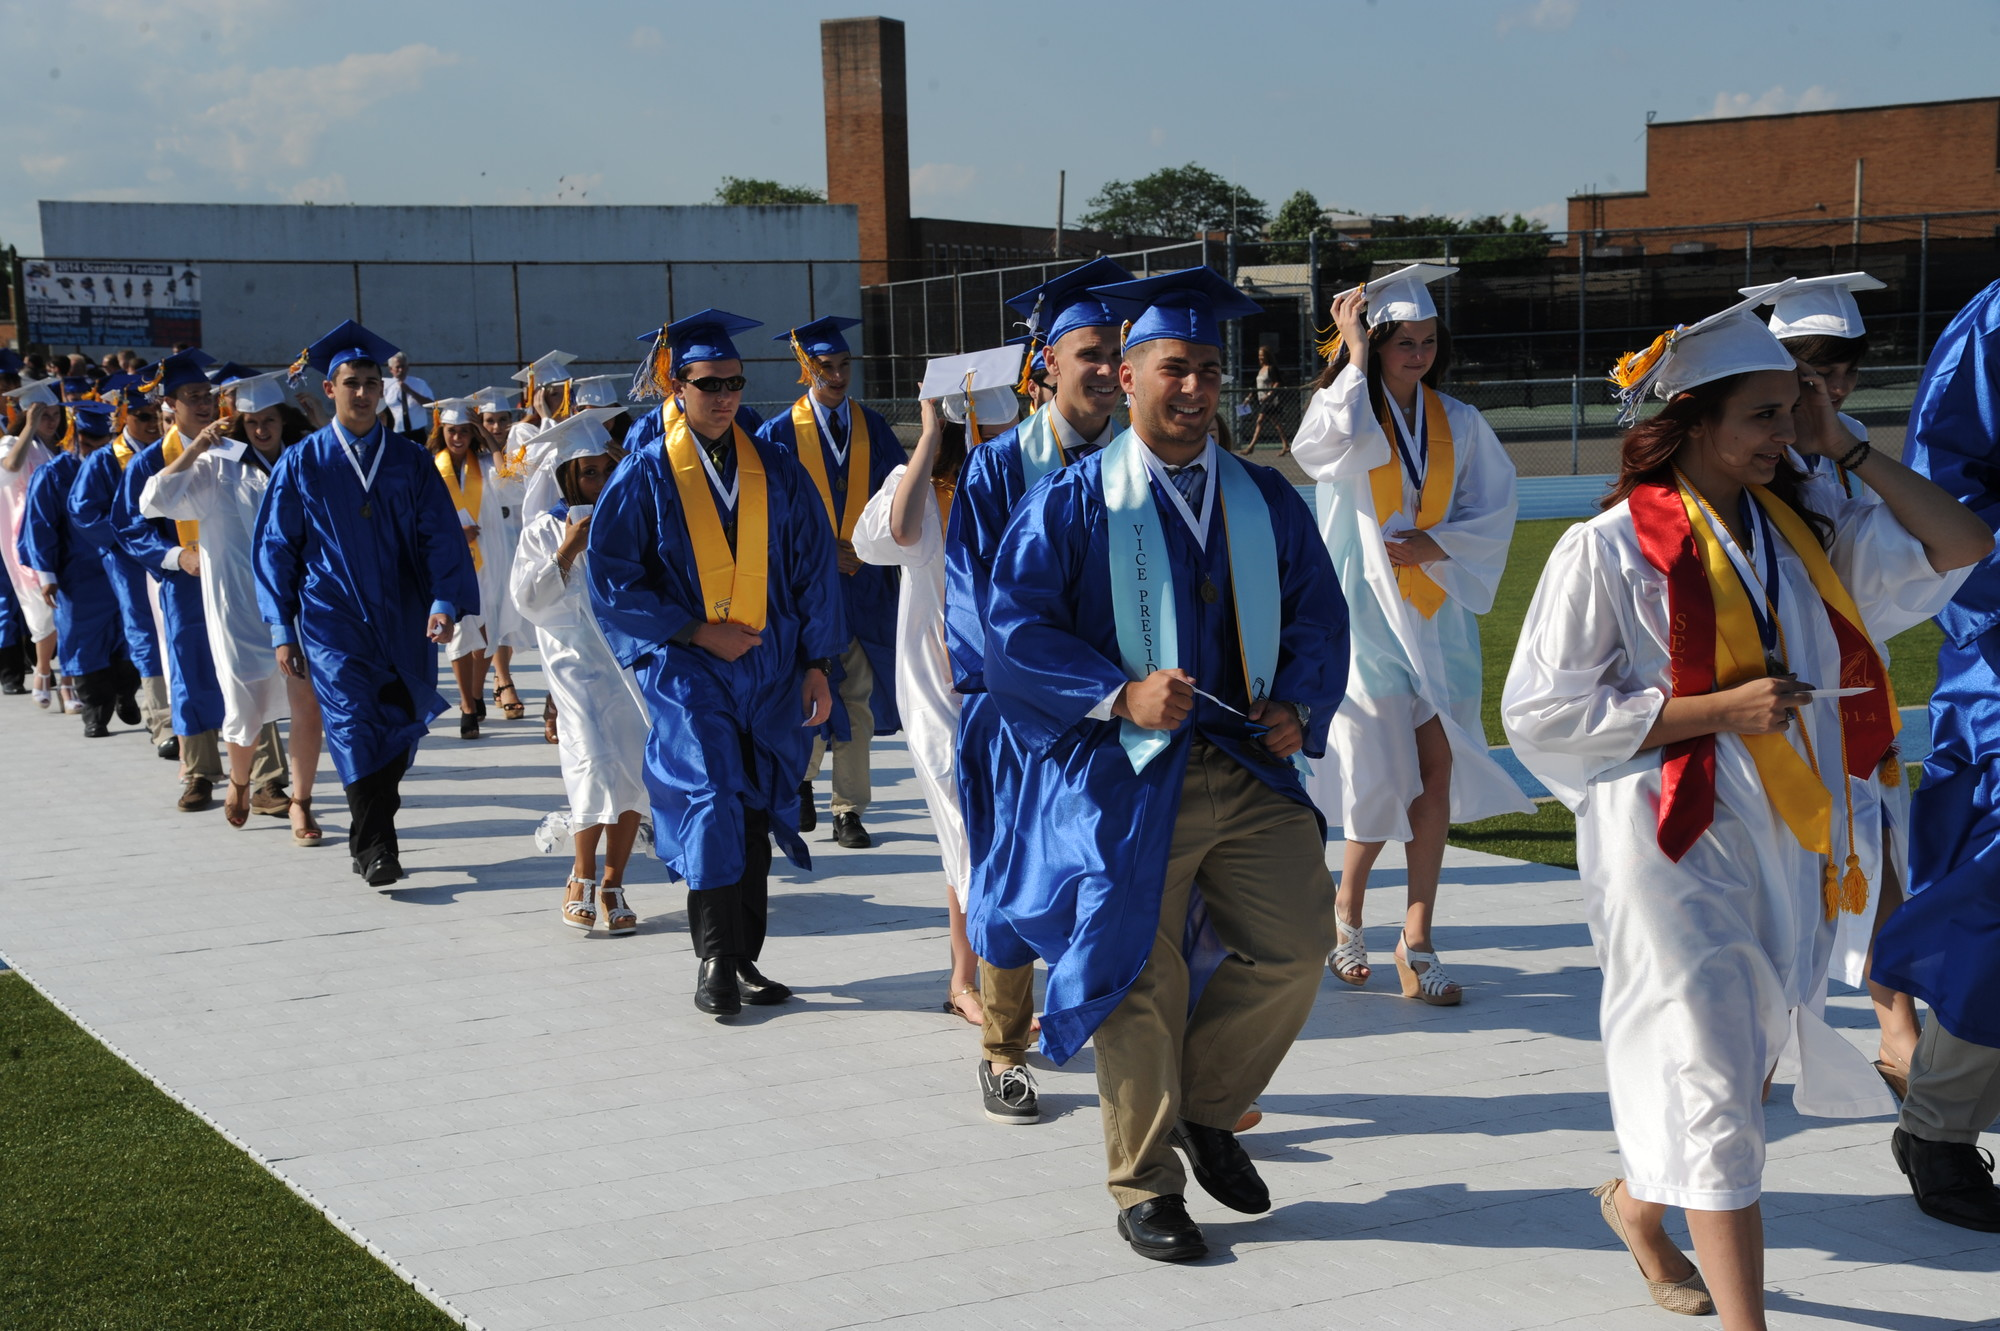 Oceanside High School's Class of 2014 marched to the stage.